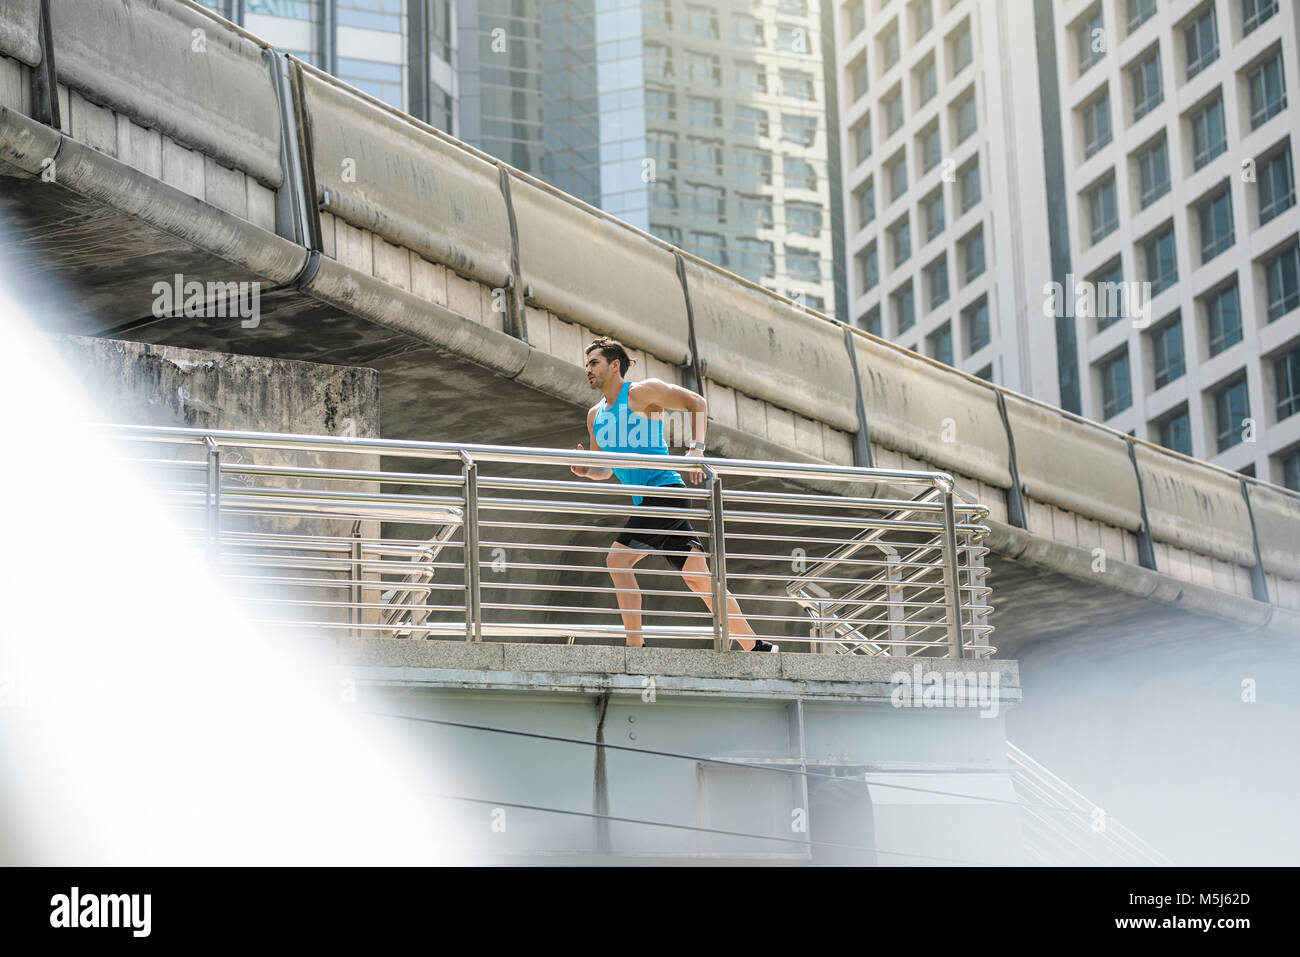 Runner Fitness en bleu shirt tournant sur le pont moderne Photo Stock